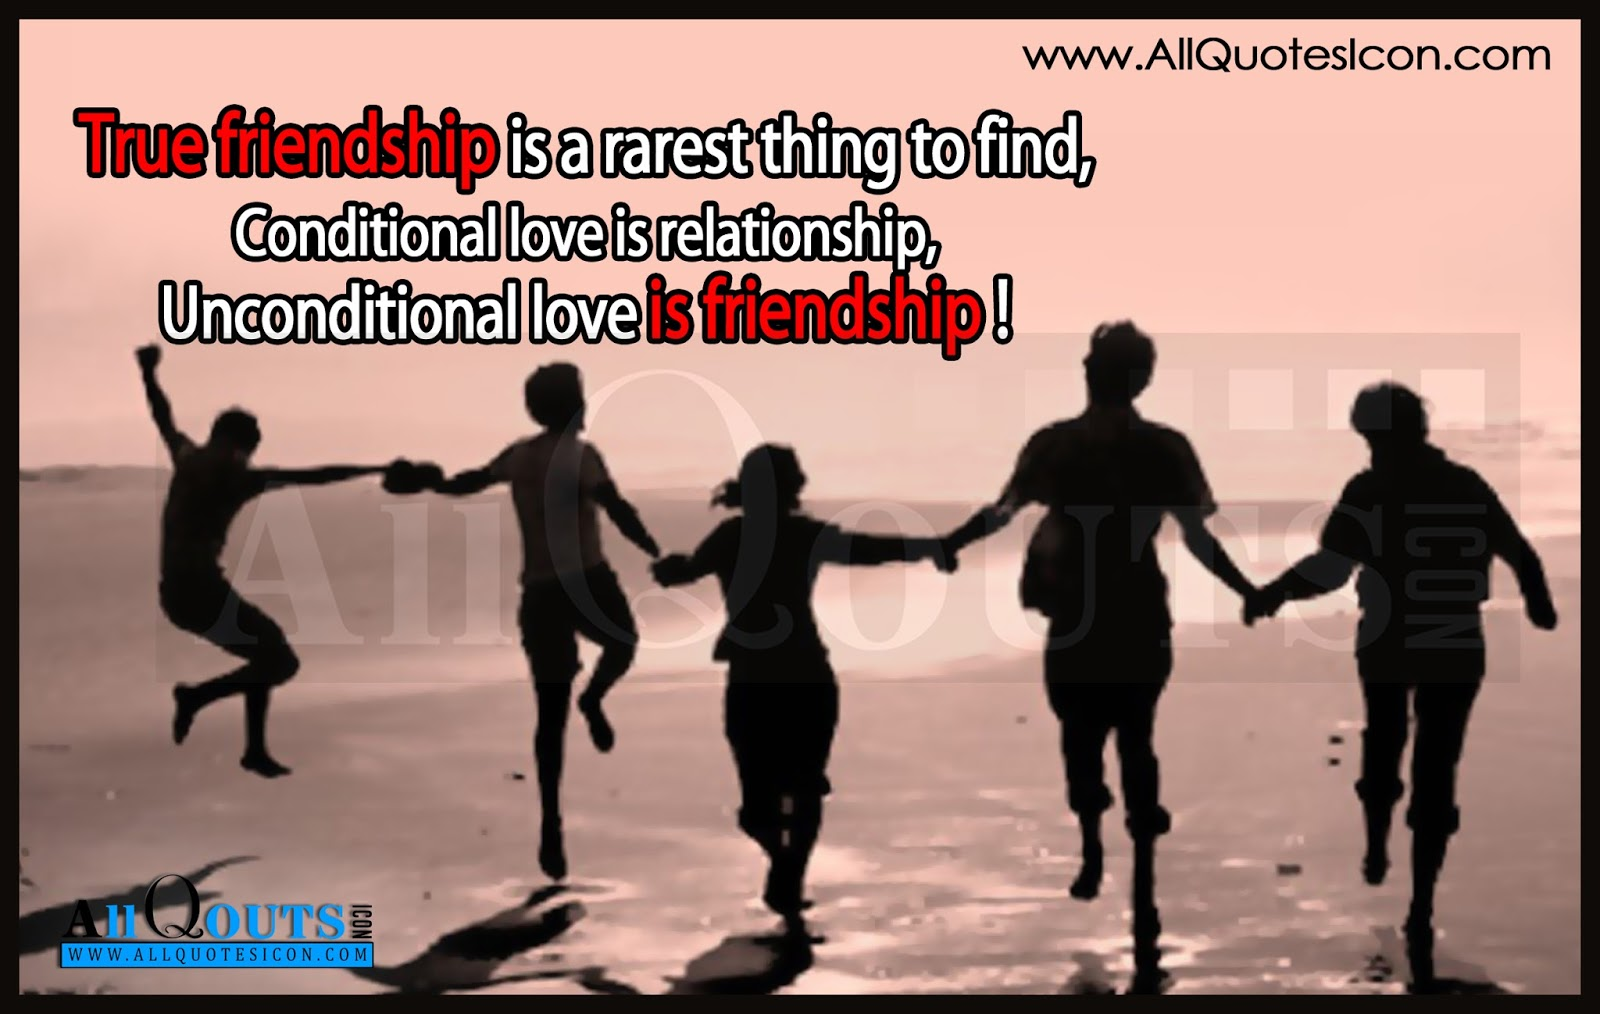 English Quotes About Friendship Friendship Quotes English  Bitami